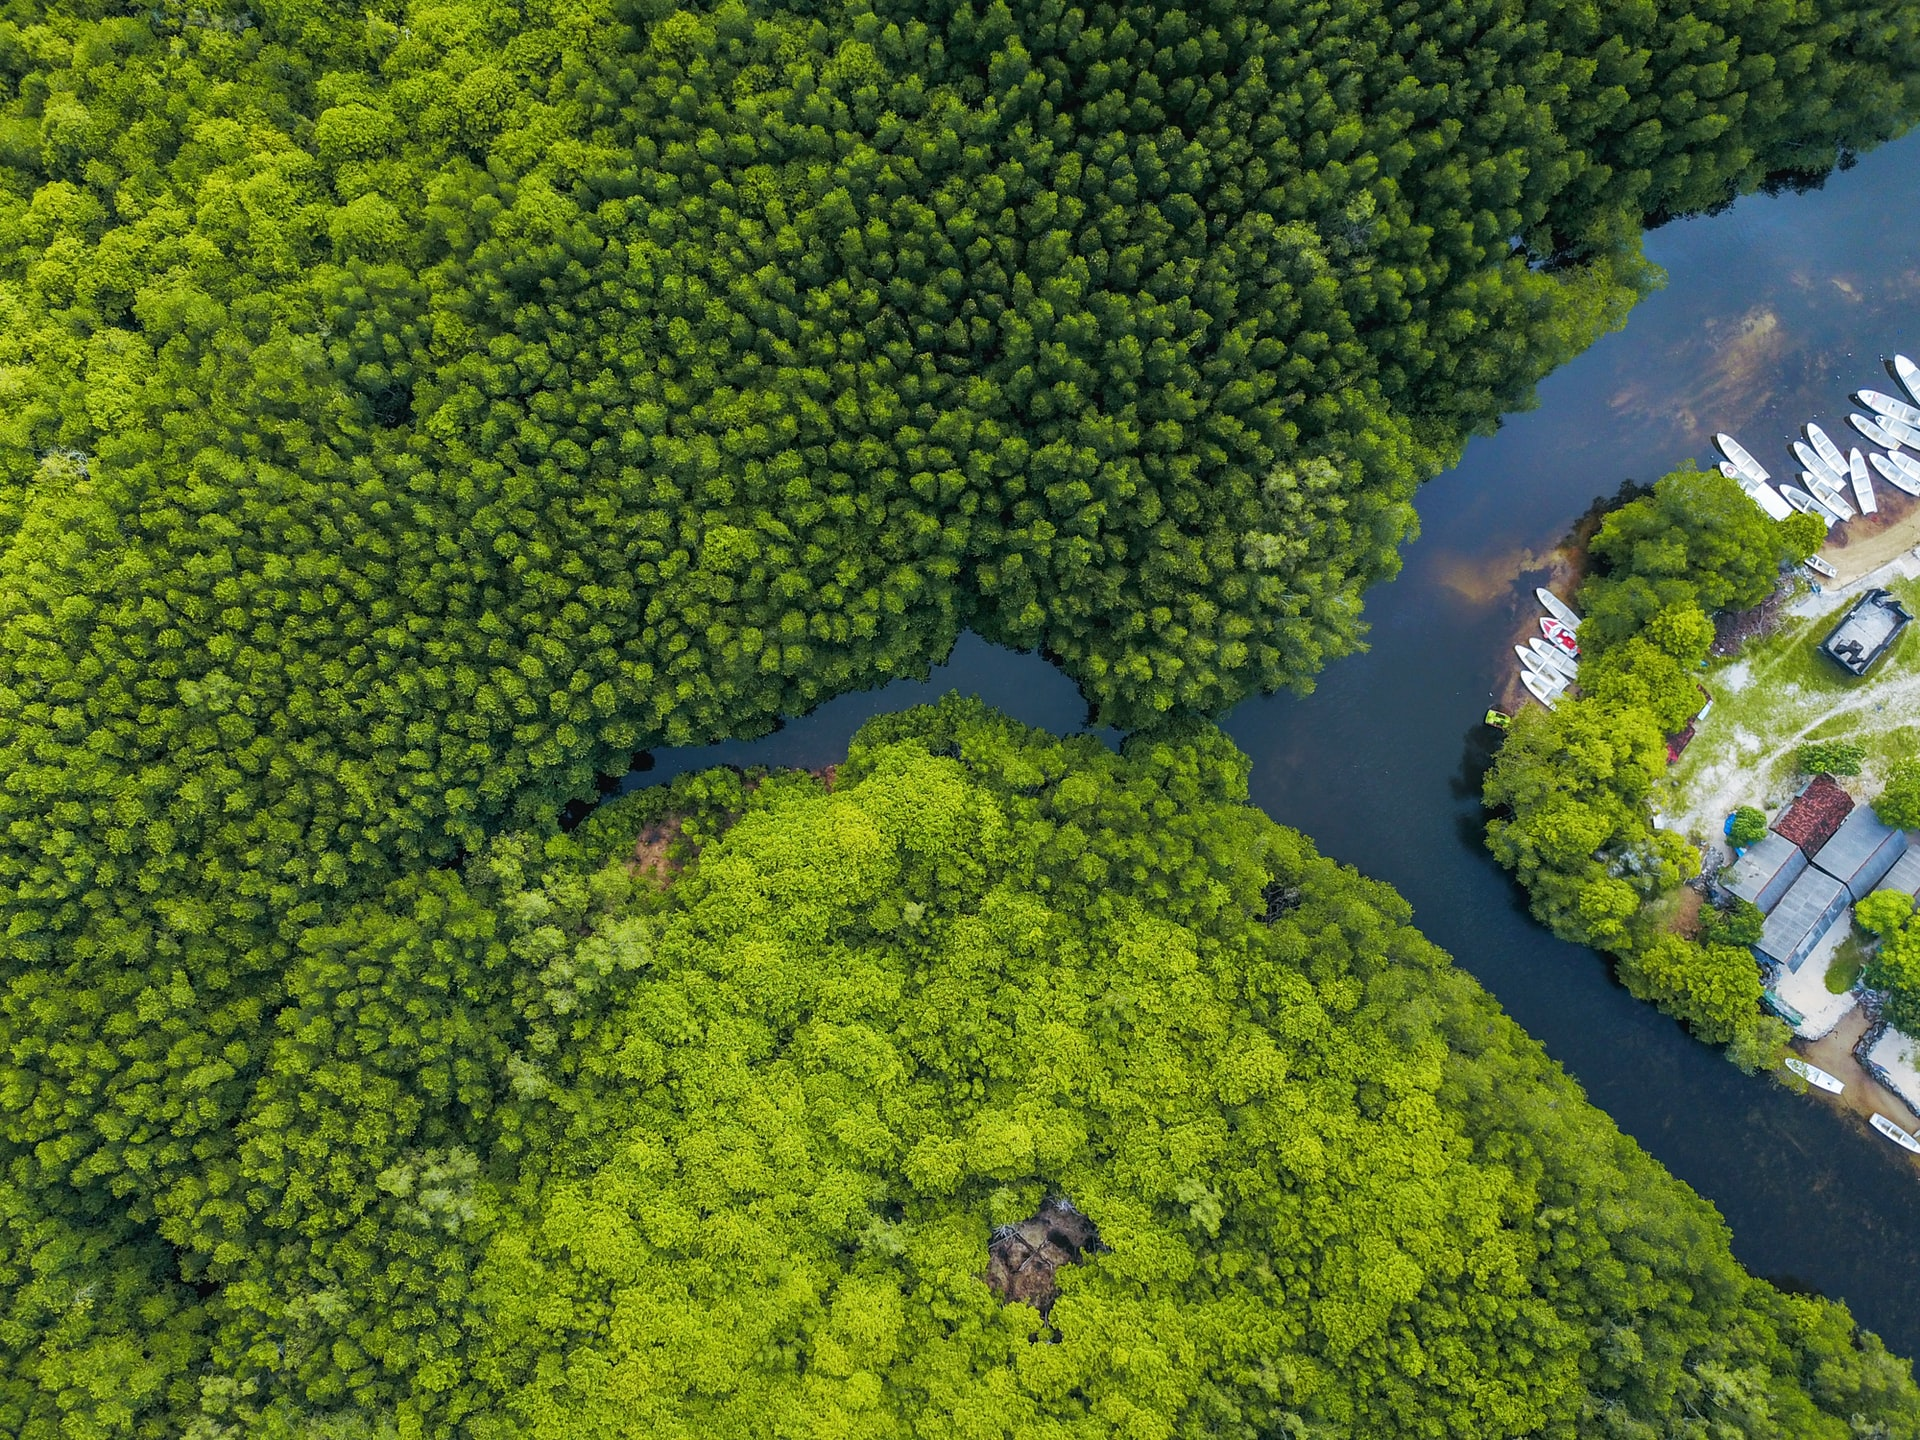 <p>The One Soul One Tree mangrove restoration campaign in Indonesia provided a new income source for residents in addition to creating environmental benefits. Photo by Joel Vodell/Unsplash</p>